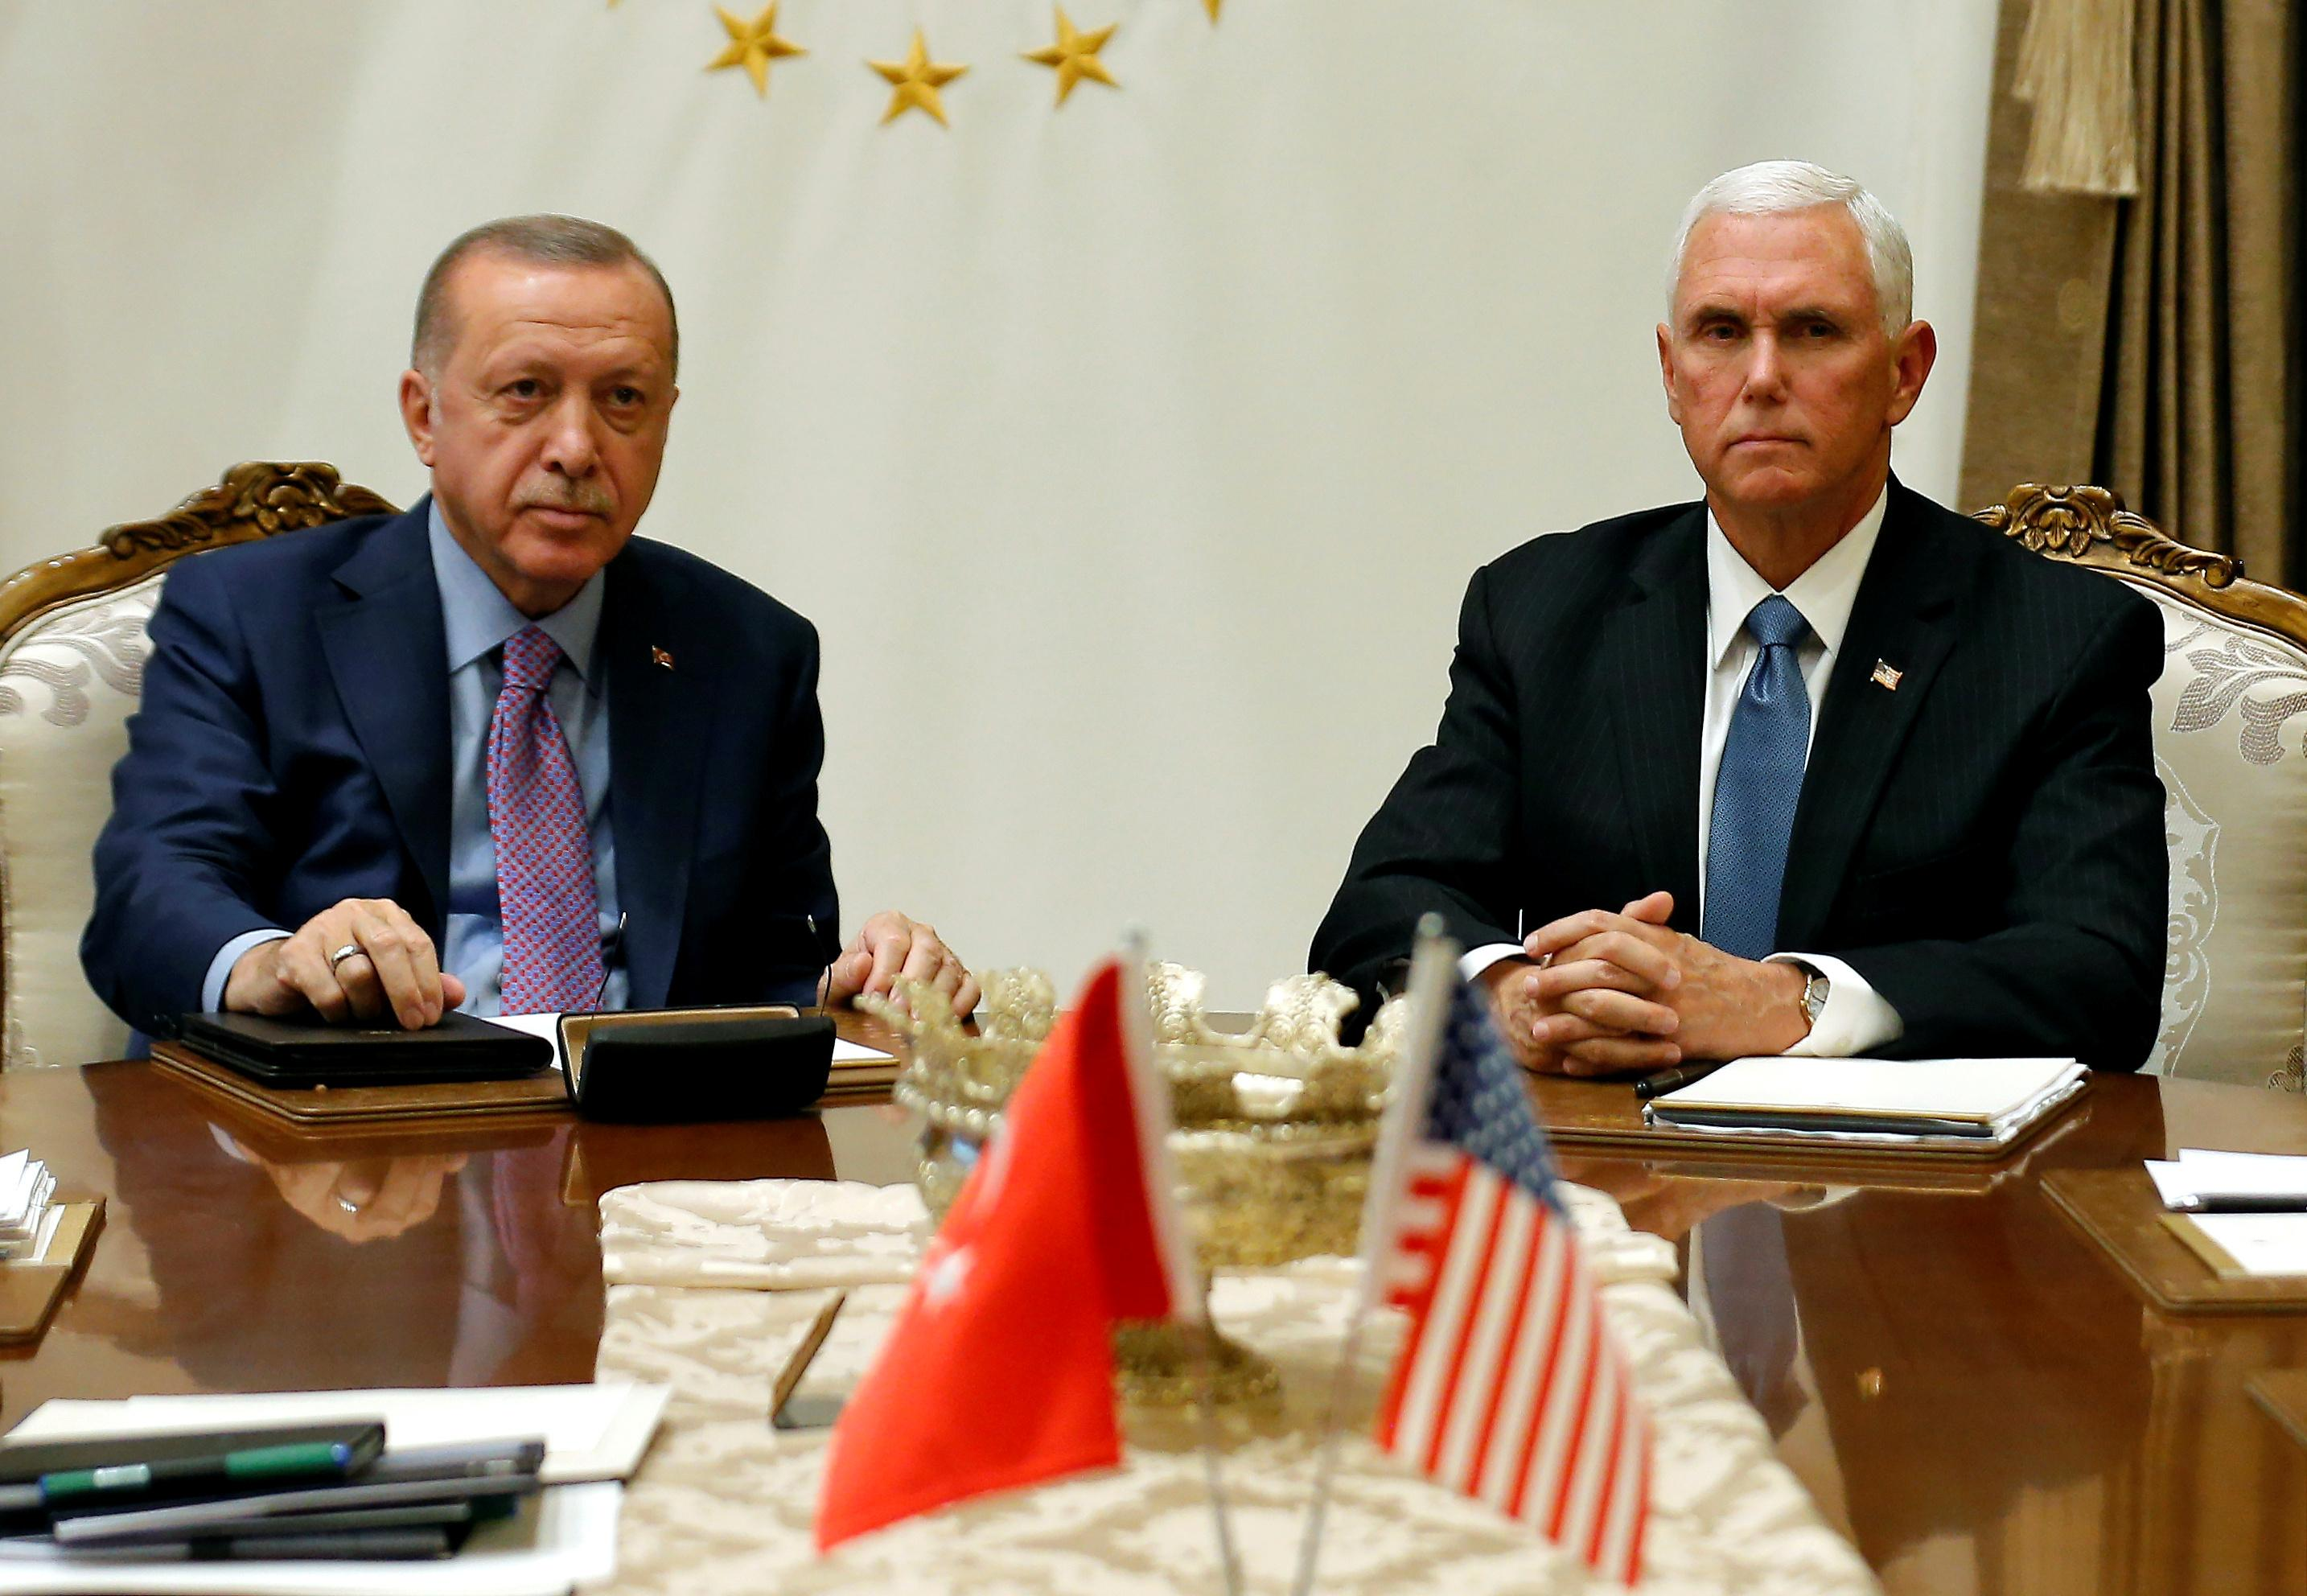 Exclusive: Surprise Syria truce hinged on Turkey's deadline demand...